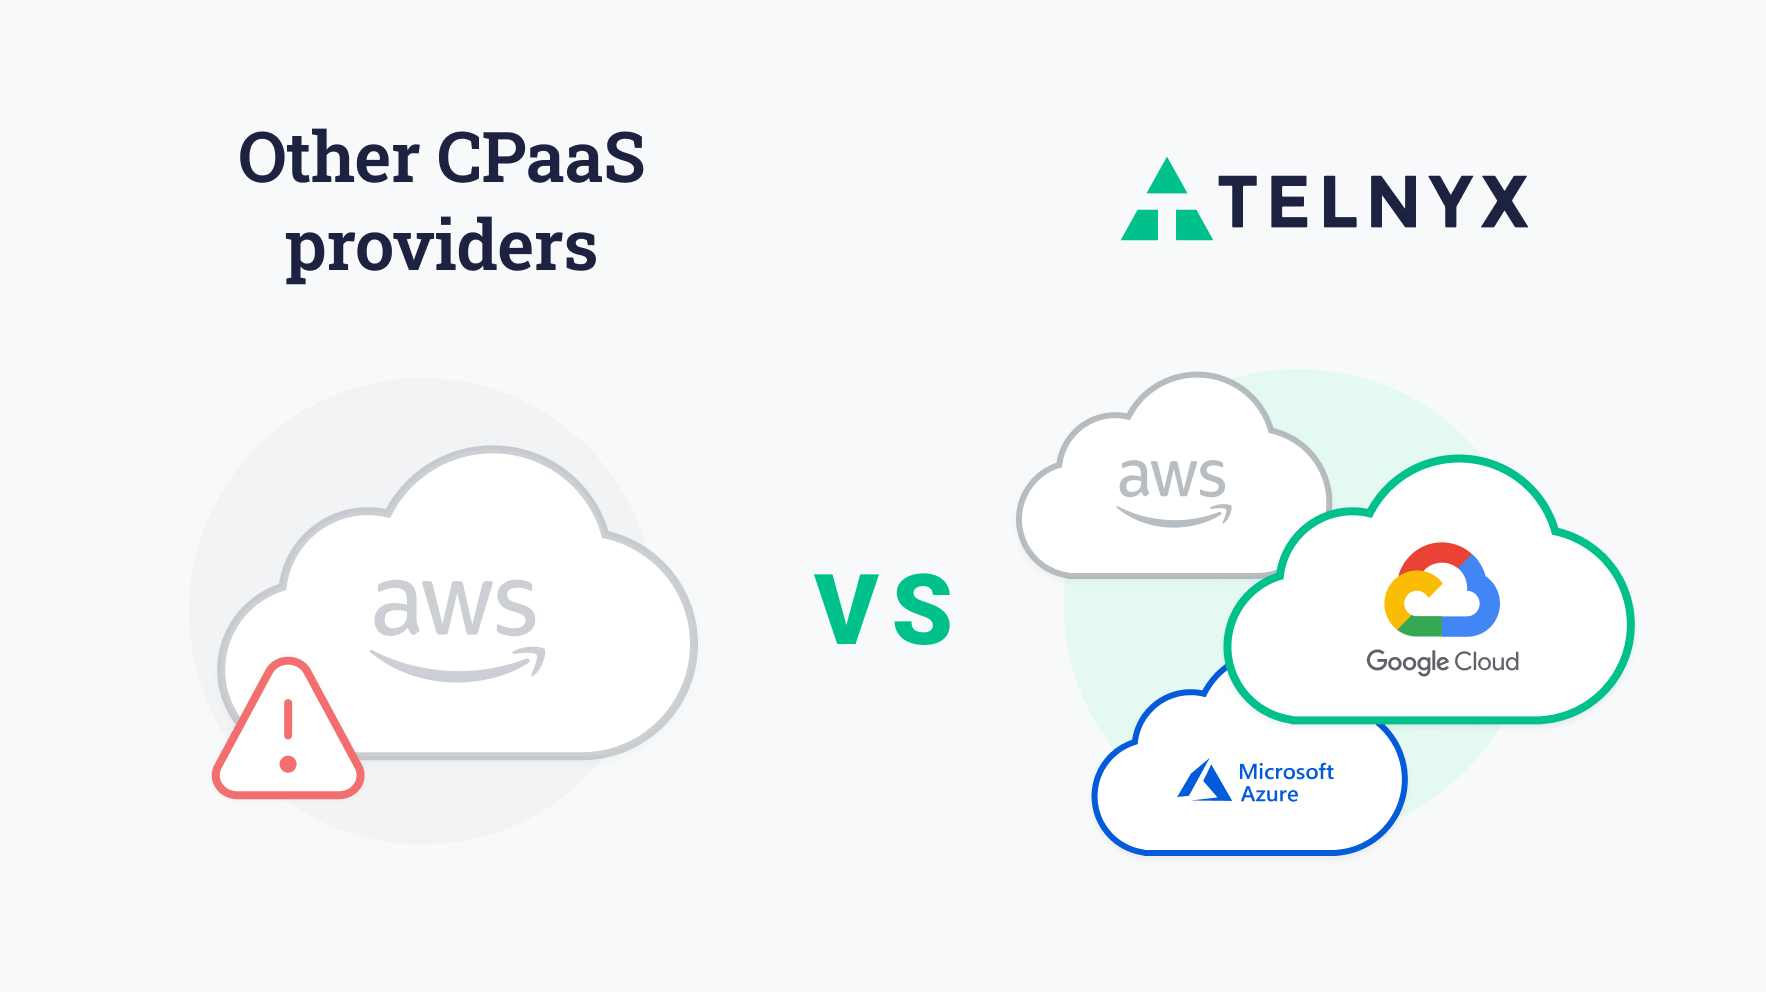 Other CPaaS providers rely on a single cloud provider, Telnyx connects with all major CSPs.